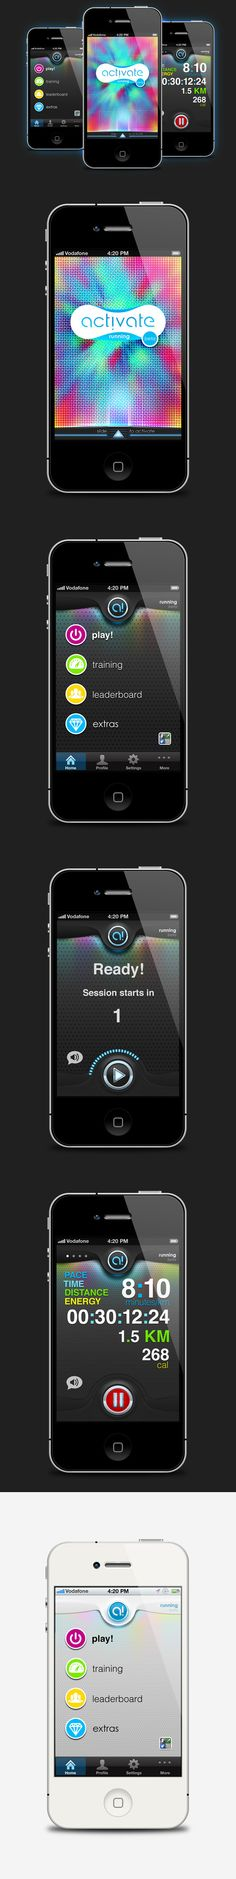 activate! - User Interface Design by Ahmed Al-Adawy, via Behance